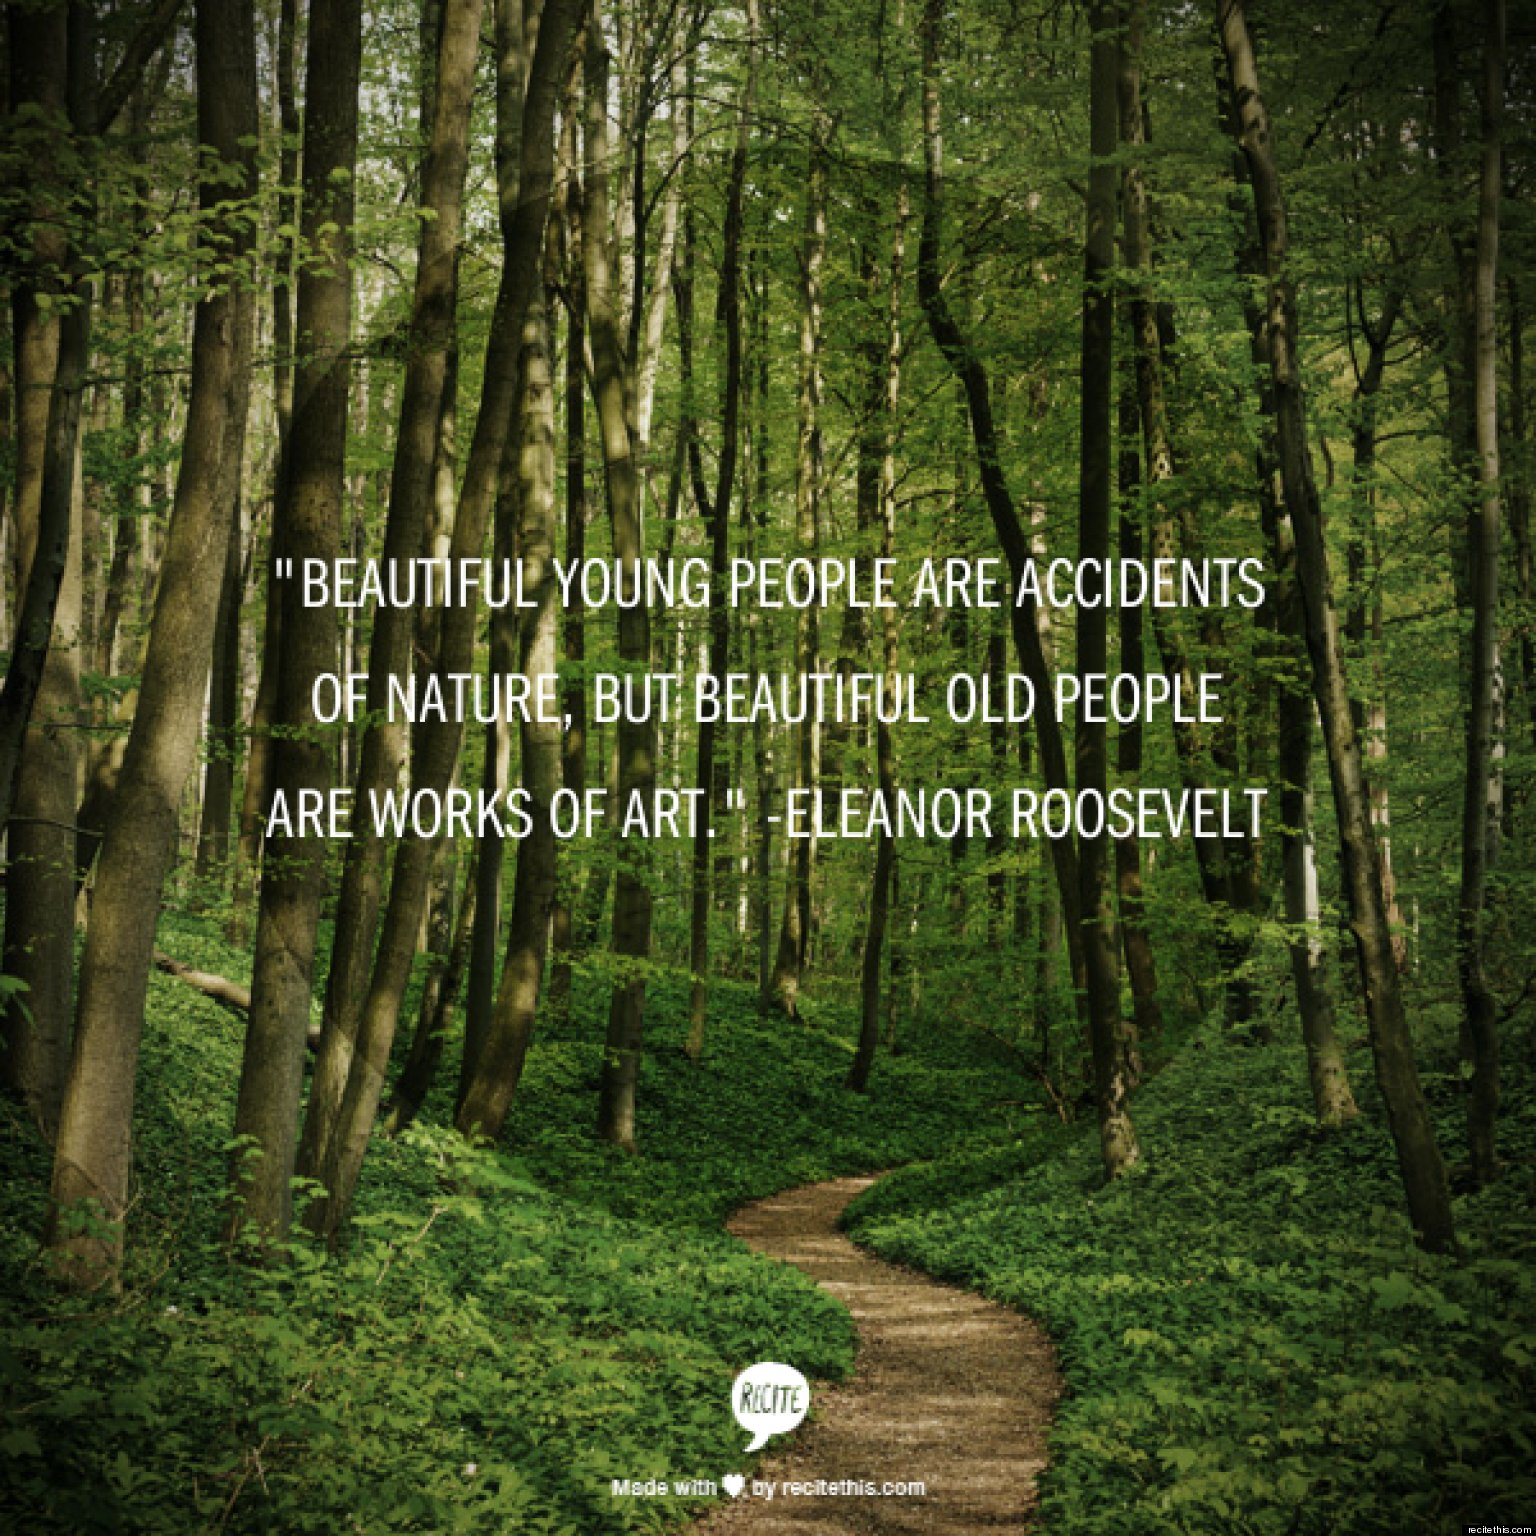 Aging Quotes: 9 Quotes That Will Make You Feel Good About